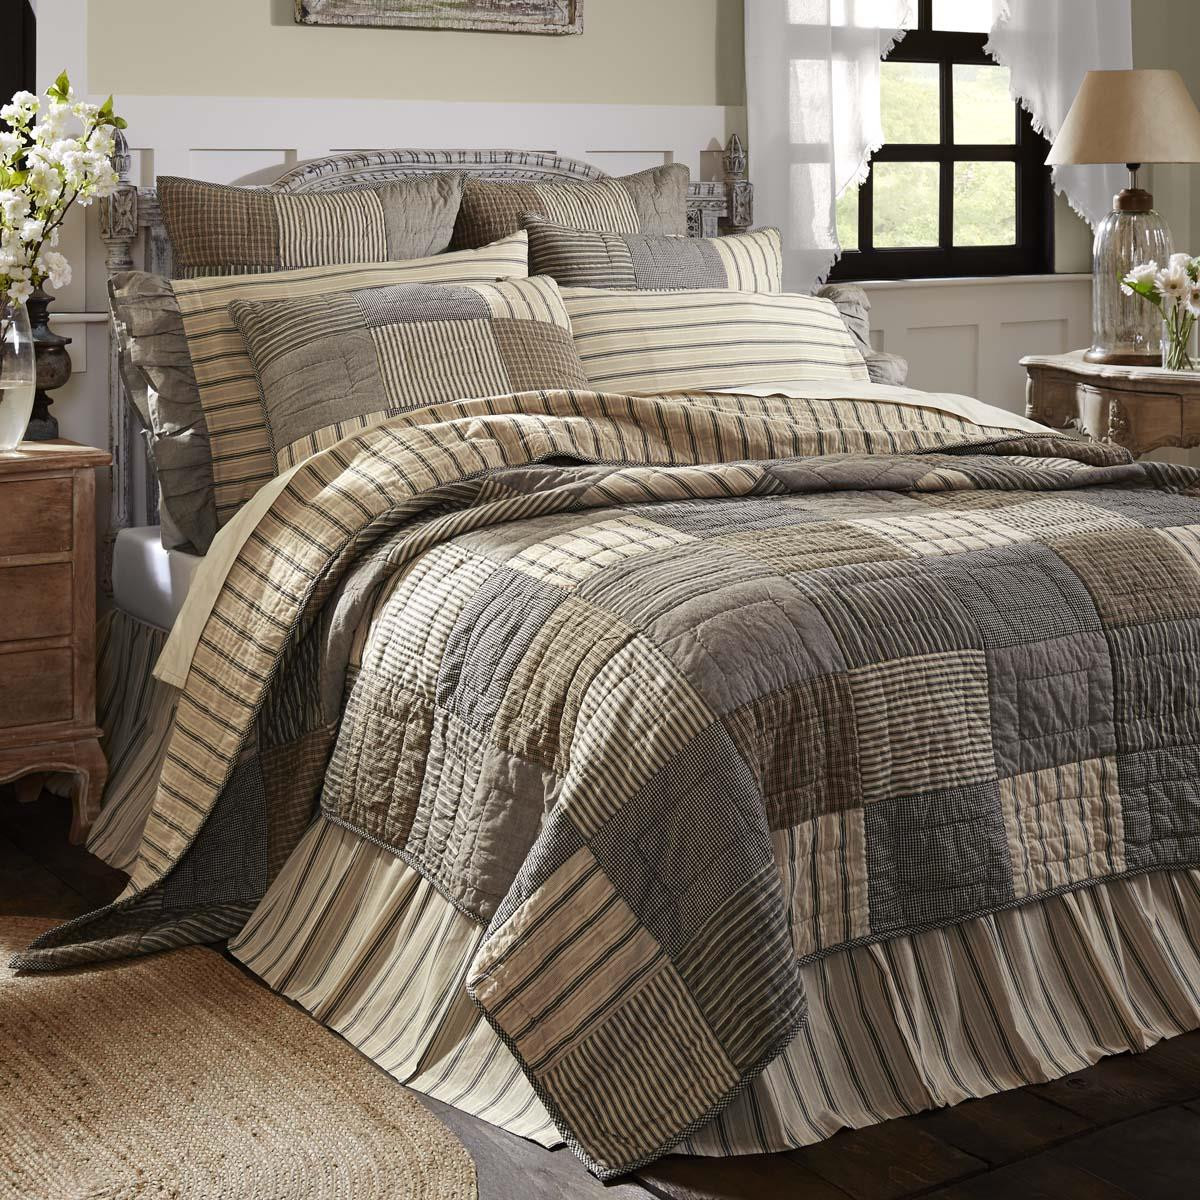 Sawyer Mill Quilt - 840528162350